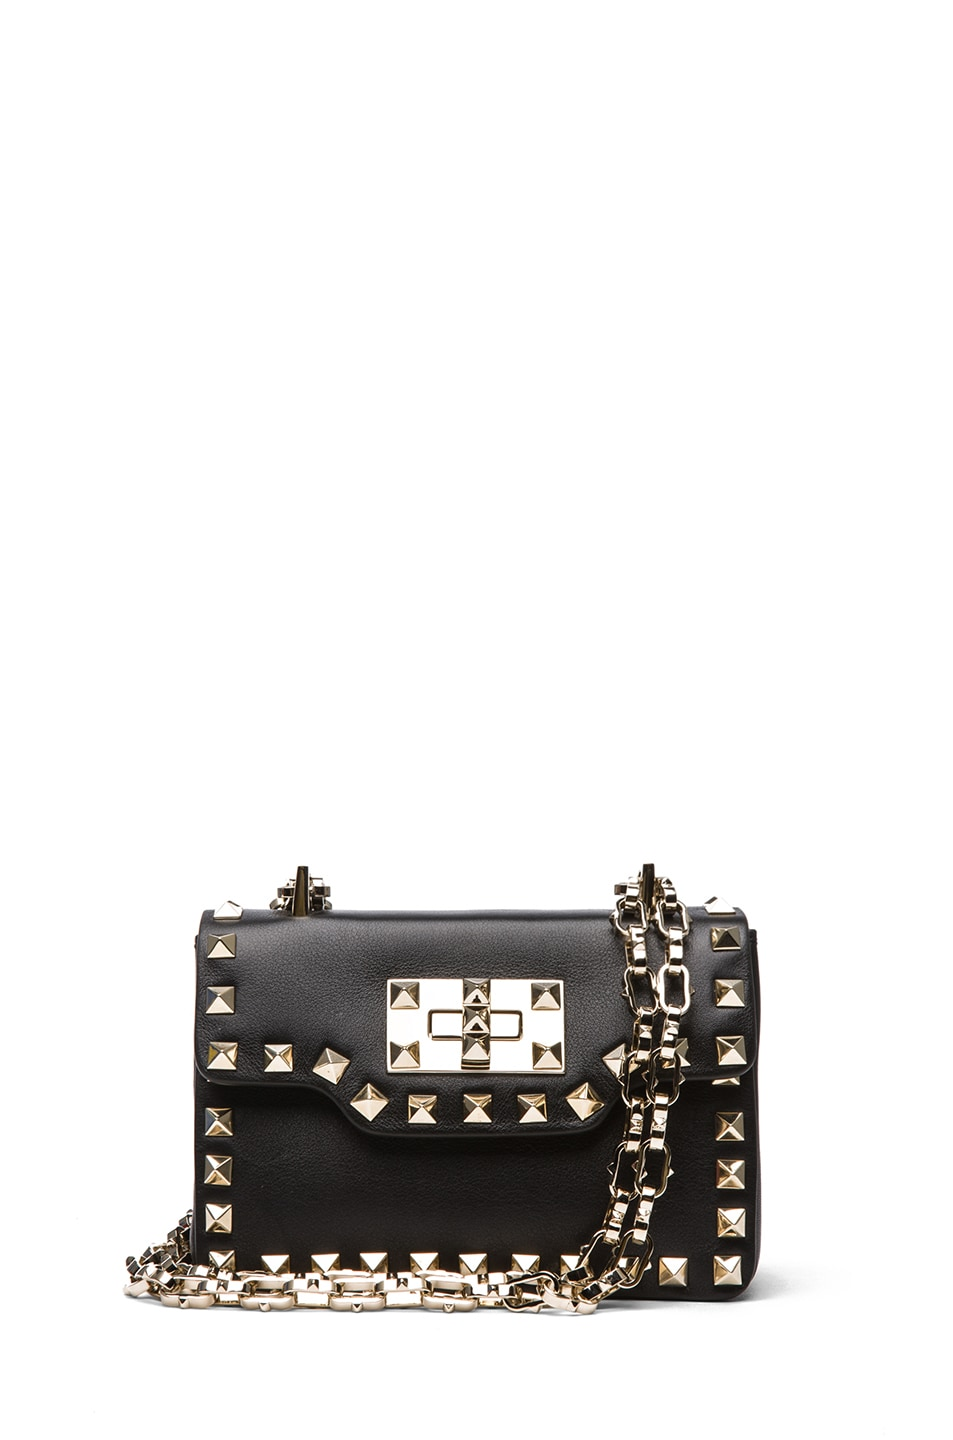 Image 1 of Valentino Small Rockstud Chain Flap Bag in Black